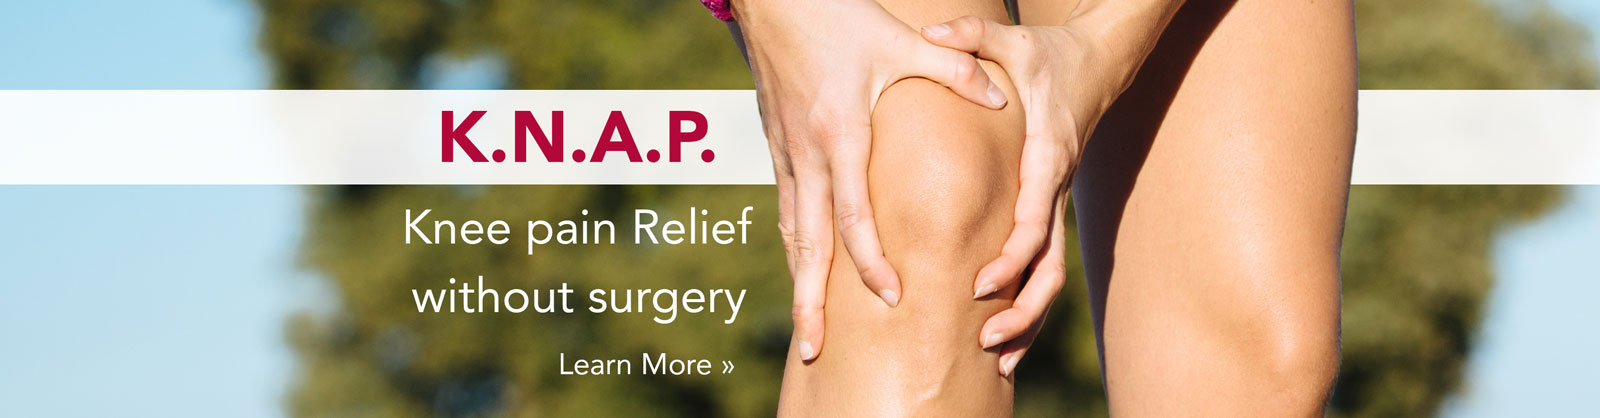 K.N.A.P. Knee pain Relief without surgery - Learn More